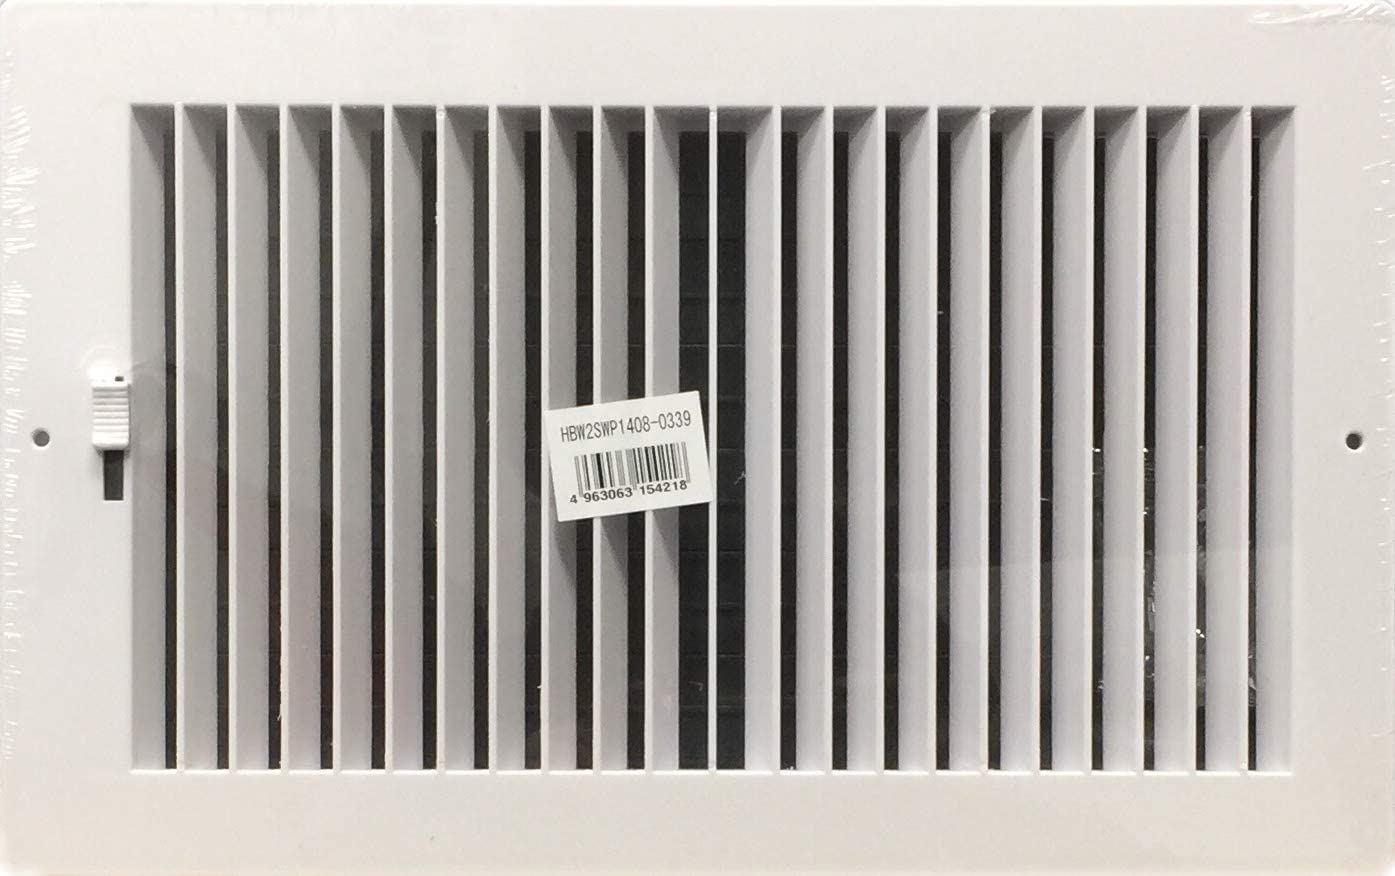 HBW Two-Way Plastic Side Wall Ceiling Ranking TOP15 w X White Register in trend rank 14